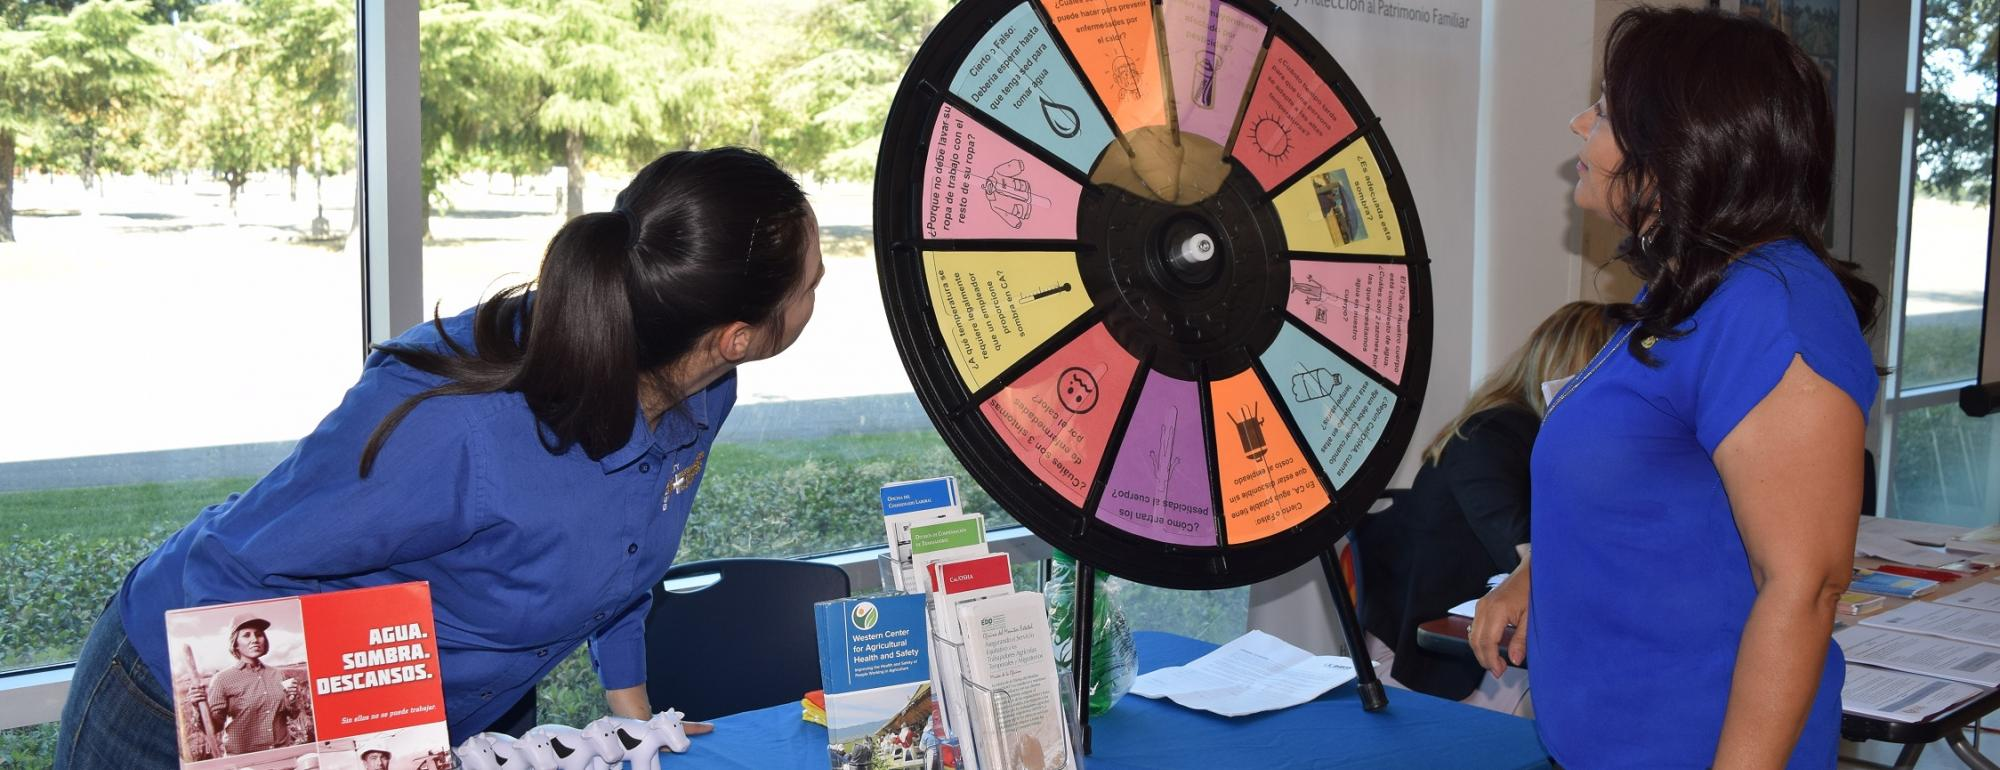 WCAHS Outreach worker play the spin the wheel game with a member of the public visiting the outreach table at an event